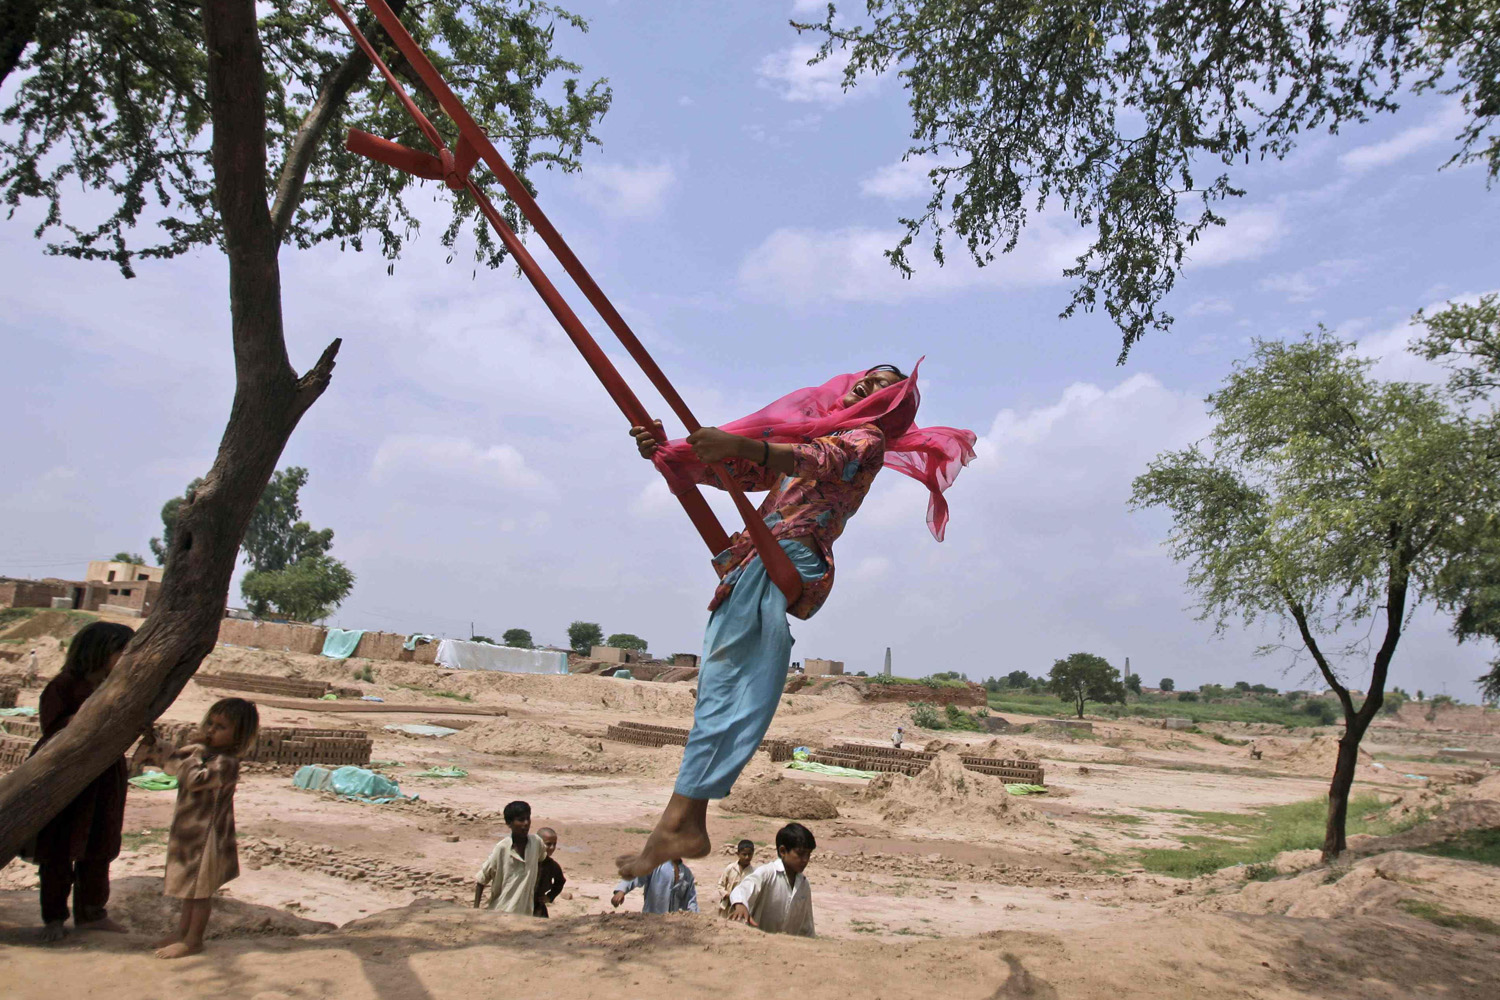 August 15, 2011. Pakistani Nargis Shah, 13, plays on a swing along with other children on the outskirts of Islamabad, Pakistan.